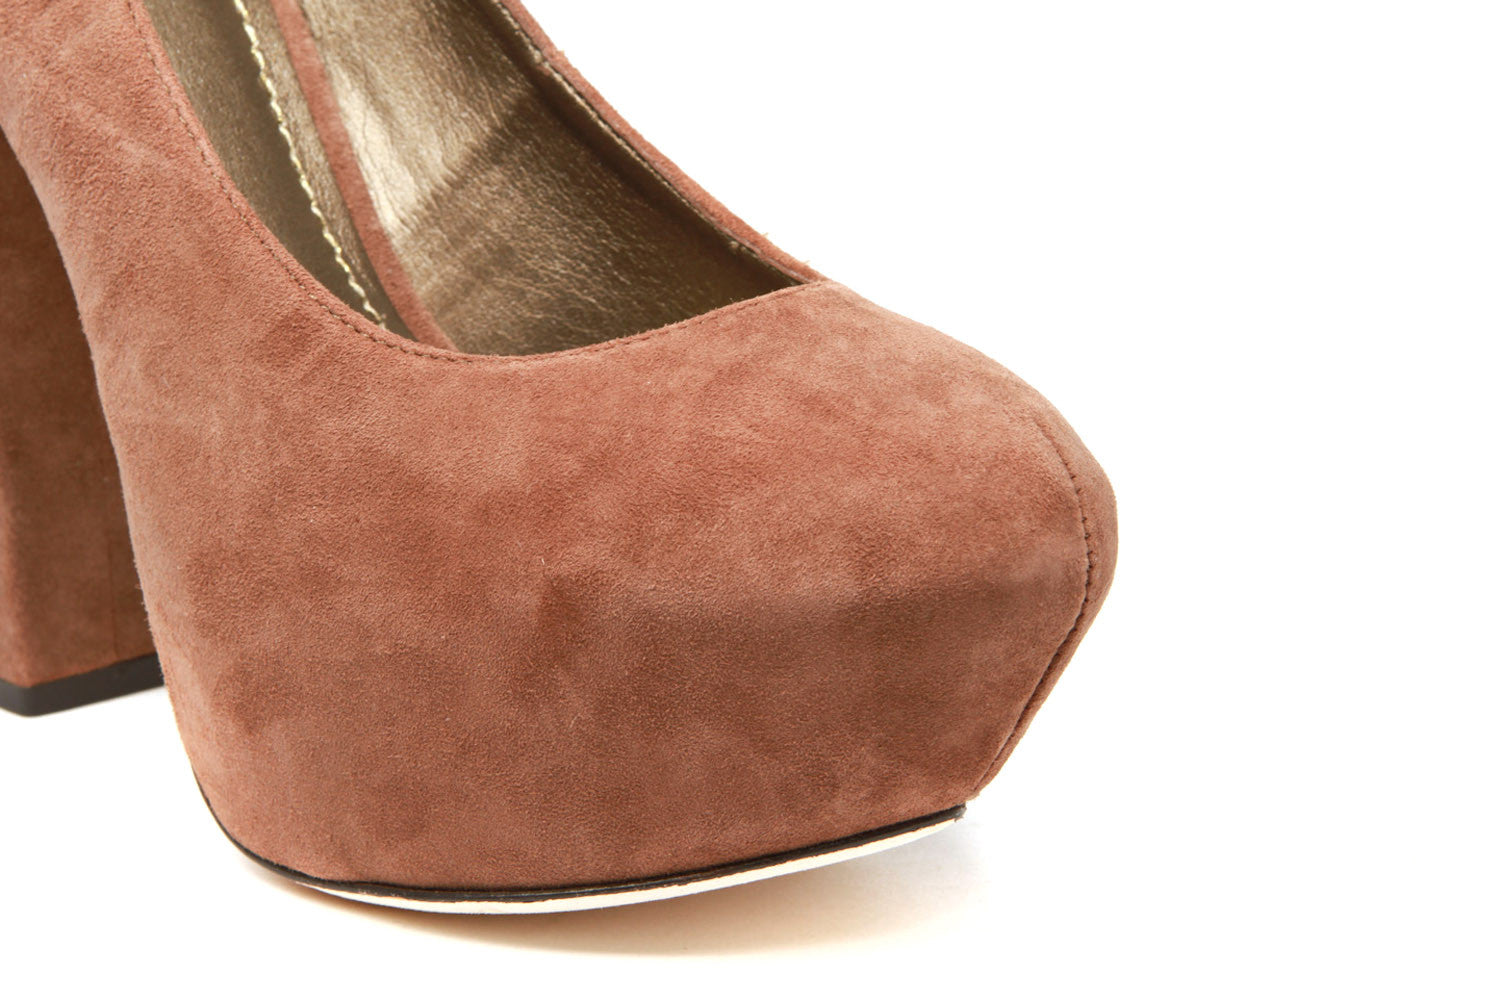 Alvahs Pumps (Brown Suede)